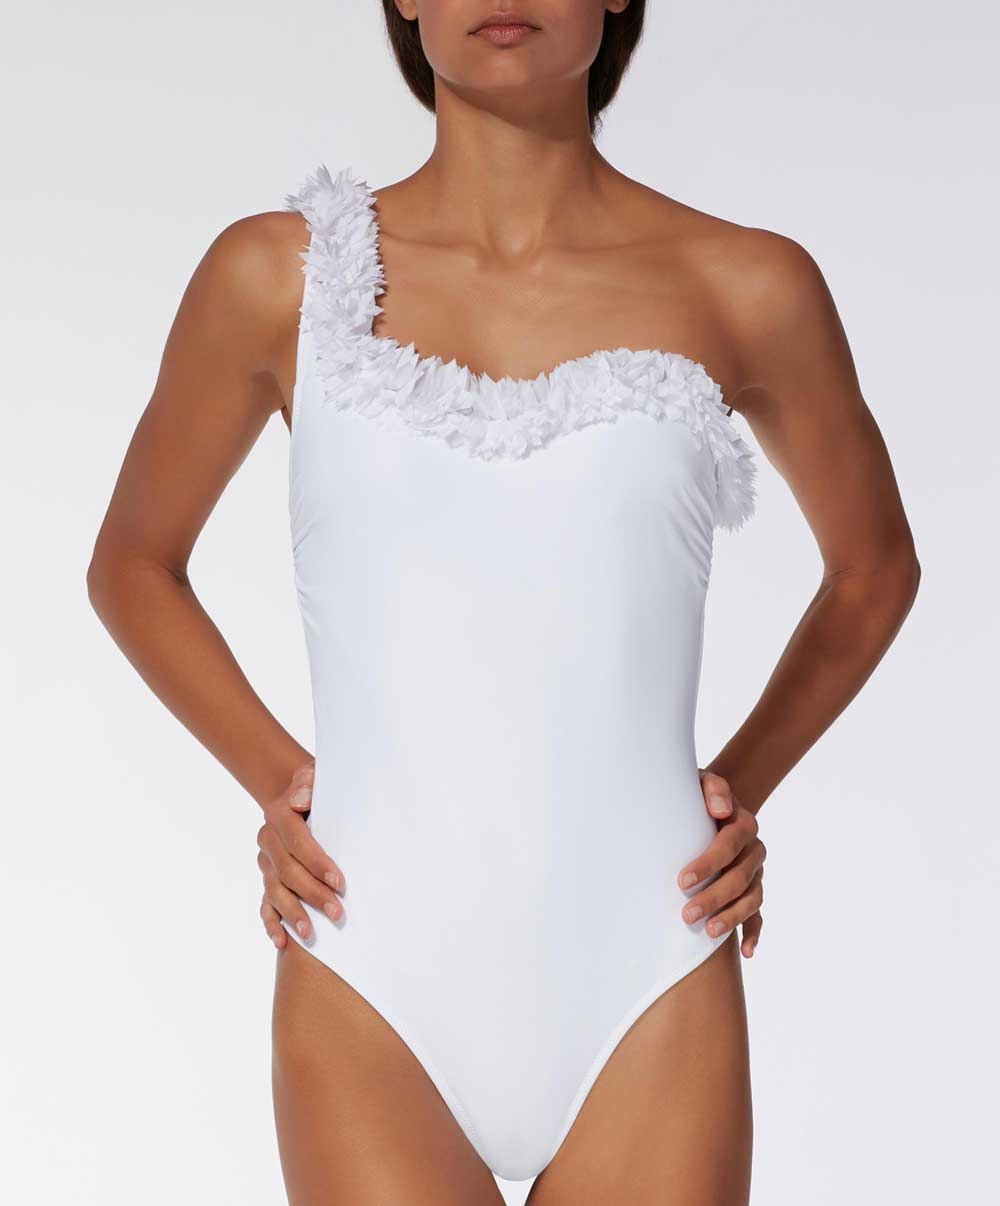 Calzedonia one-piece full-length swimwear 2018